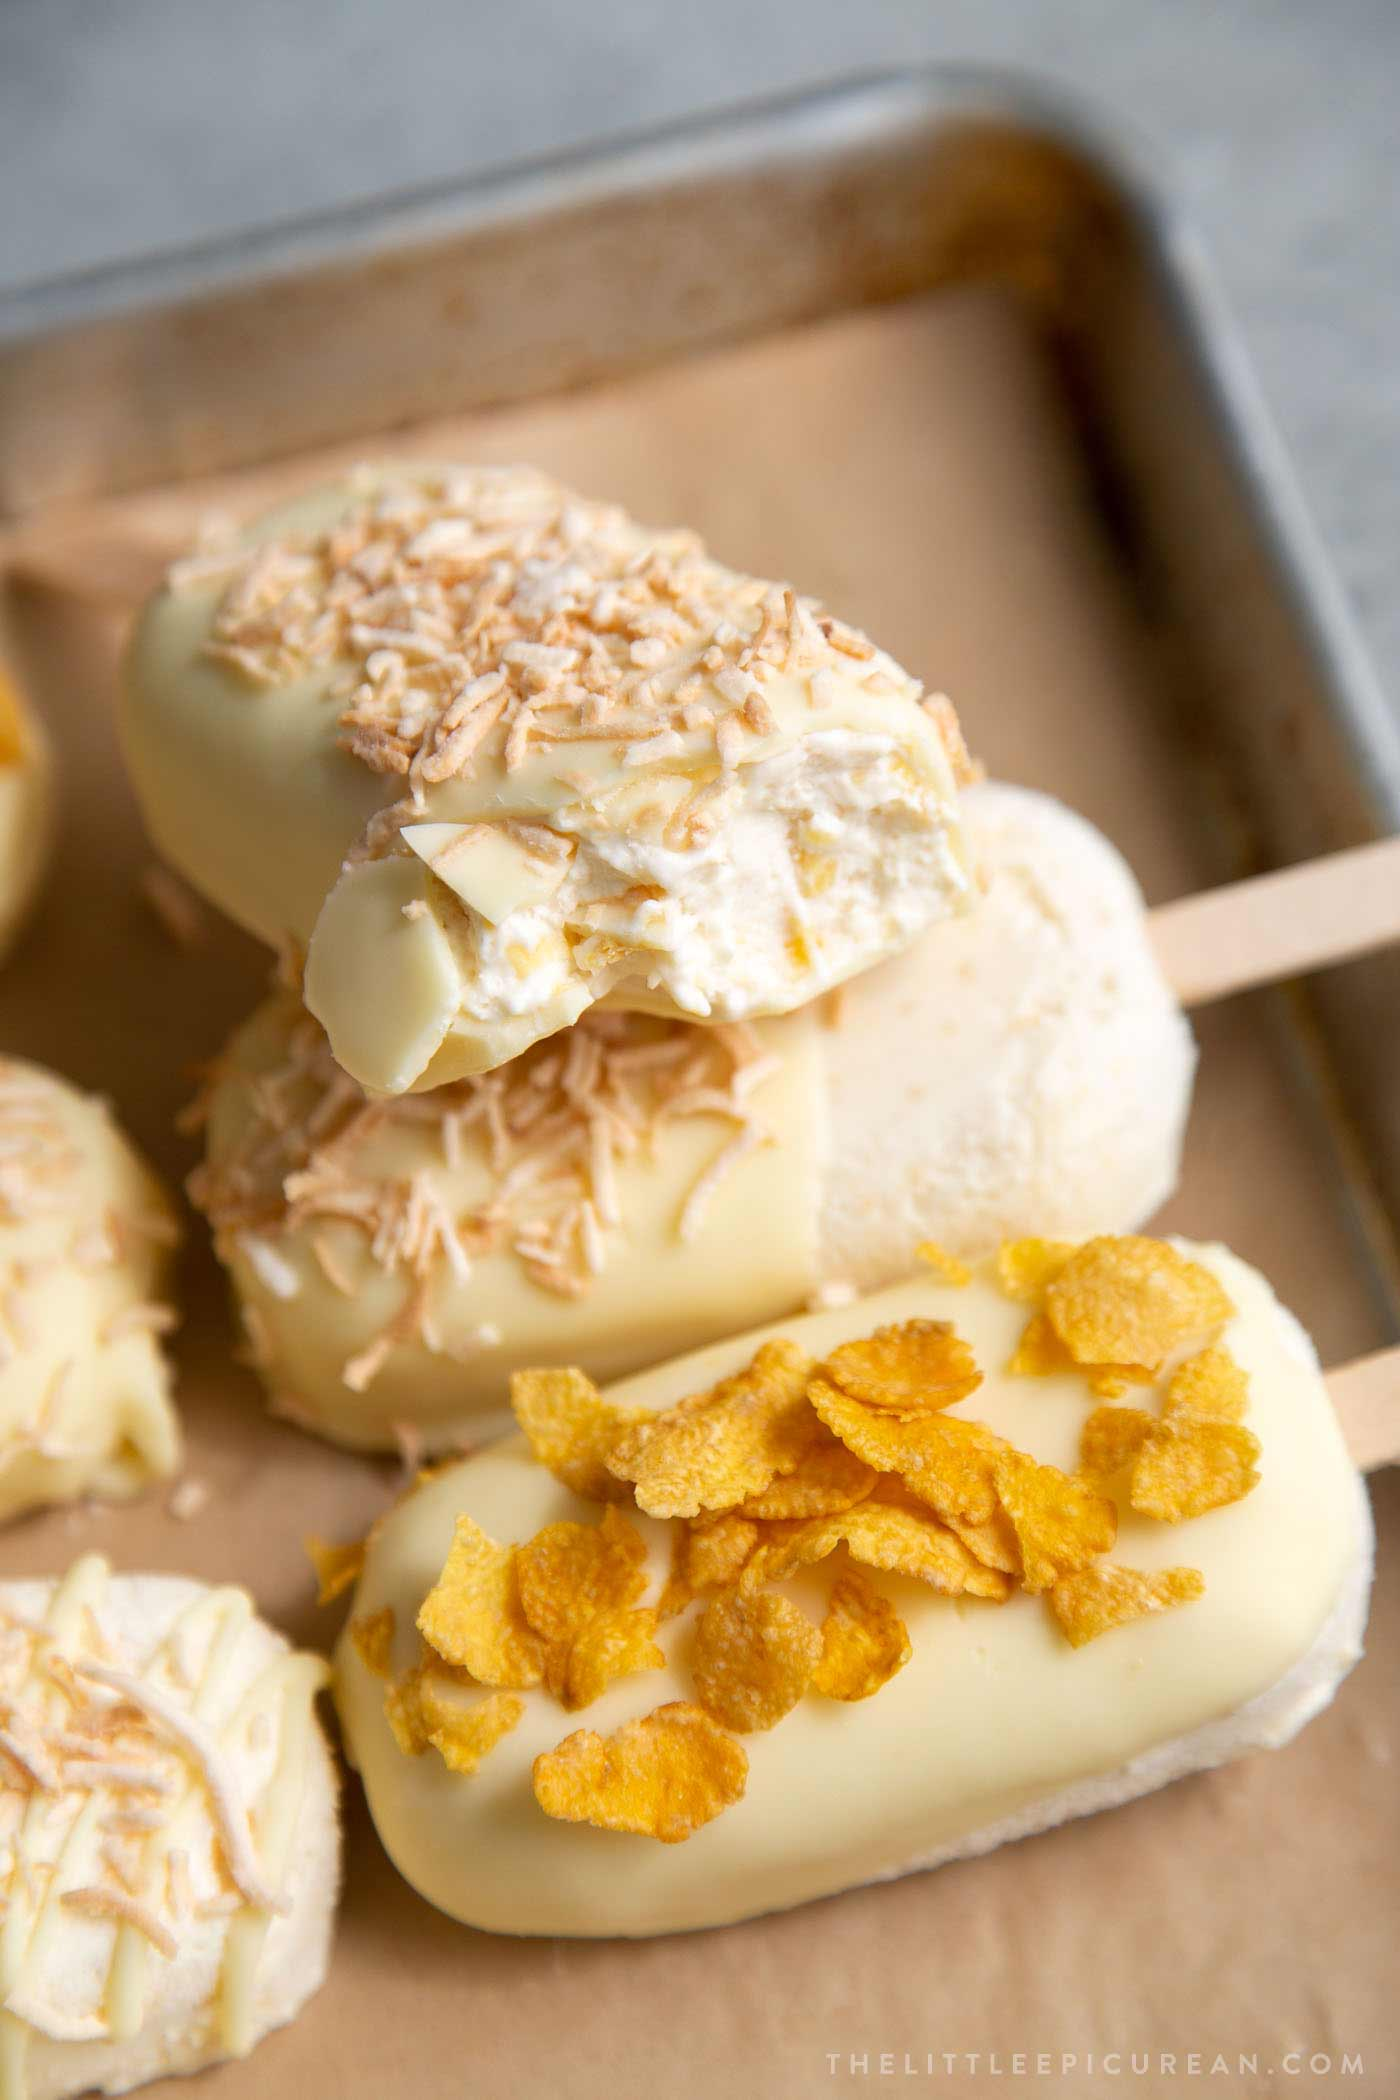 White chocolate dipped corn ice cream topped with corn flakes and shredded coconut